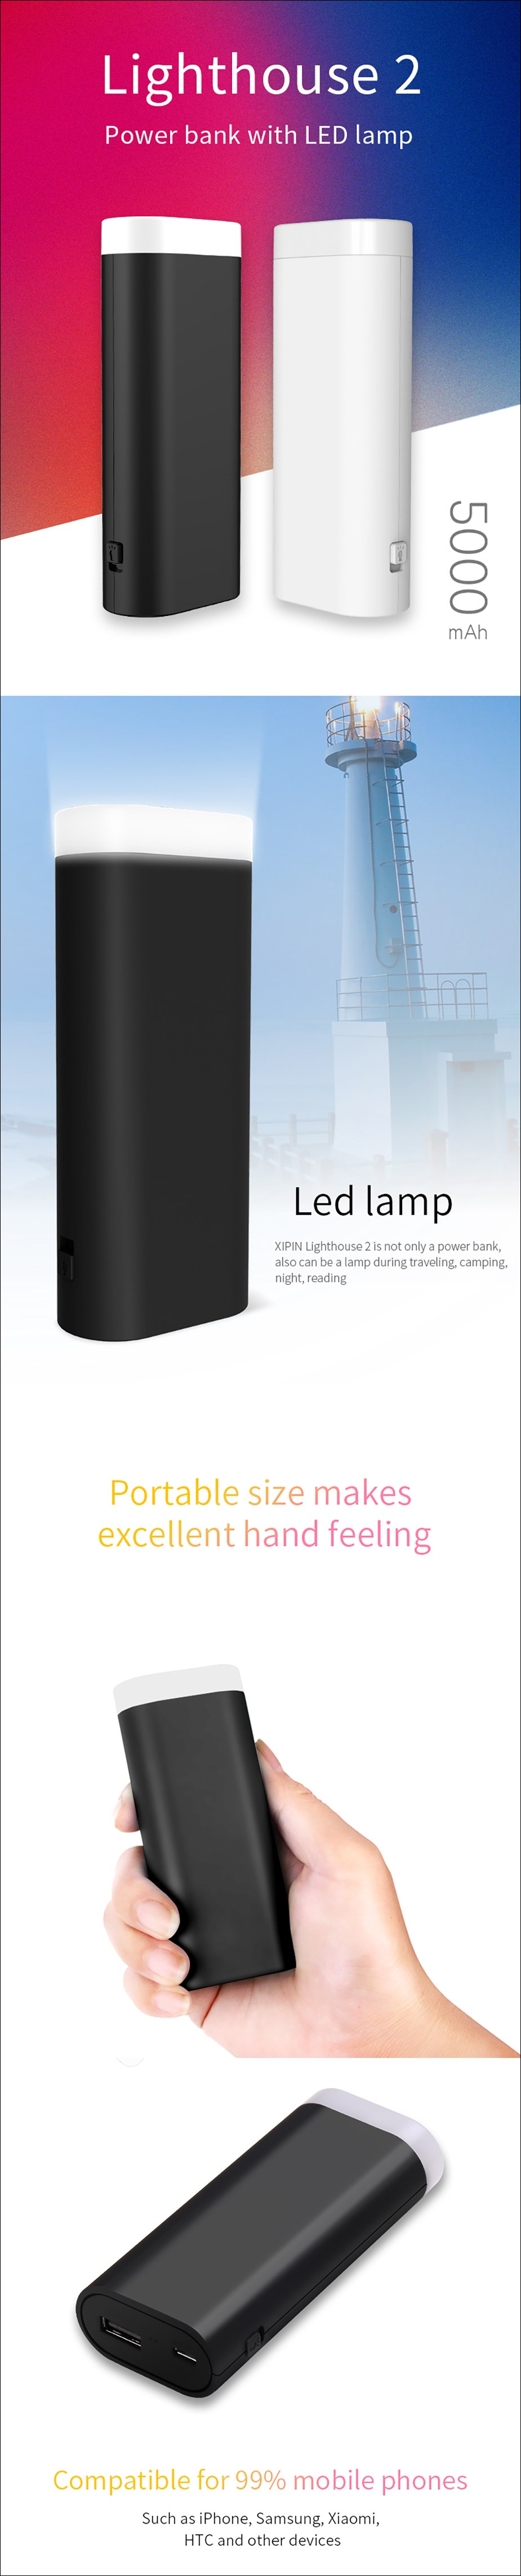 XiPin Light House 2 5000mAh USB Portable Power Bank - Black - Overview 1